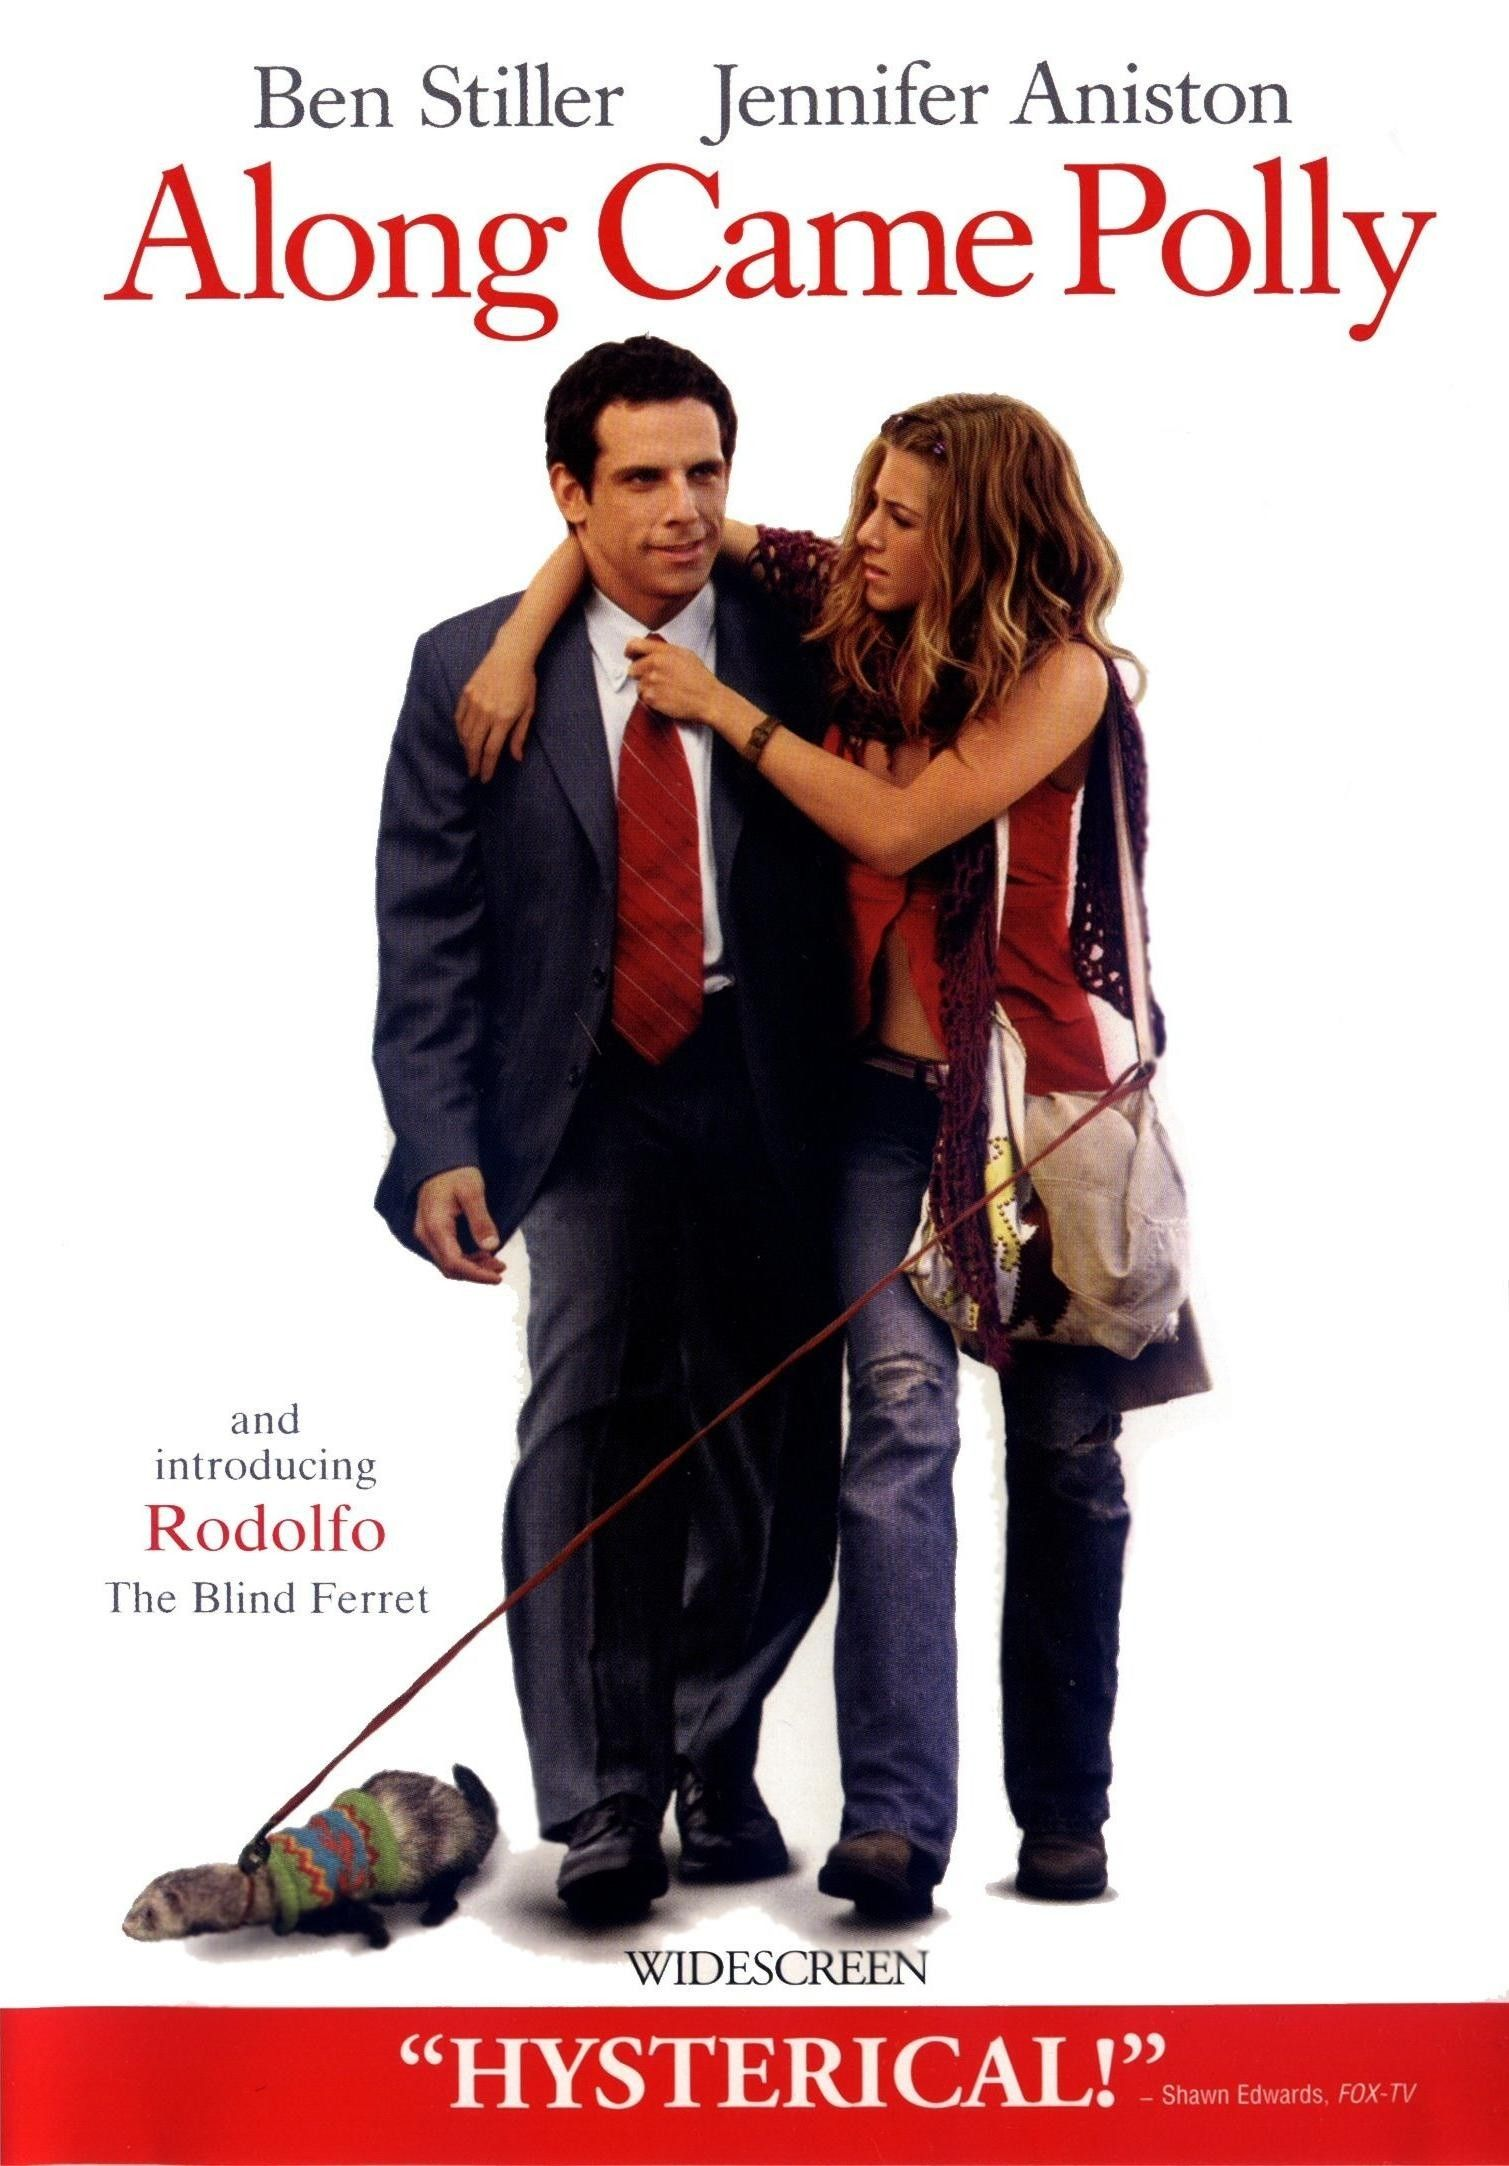 Along Came Polly 2004 Along Came Polly Comedy Movies Jennifer Aniston